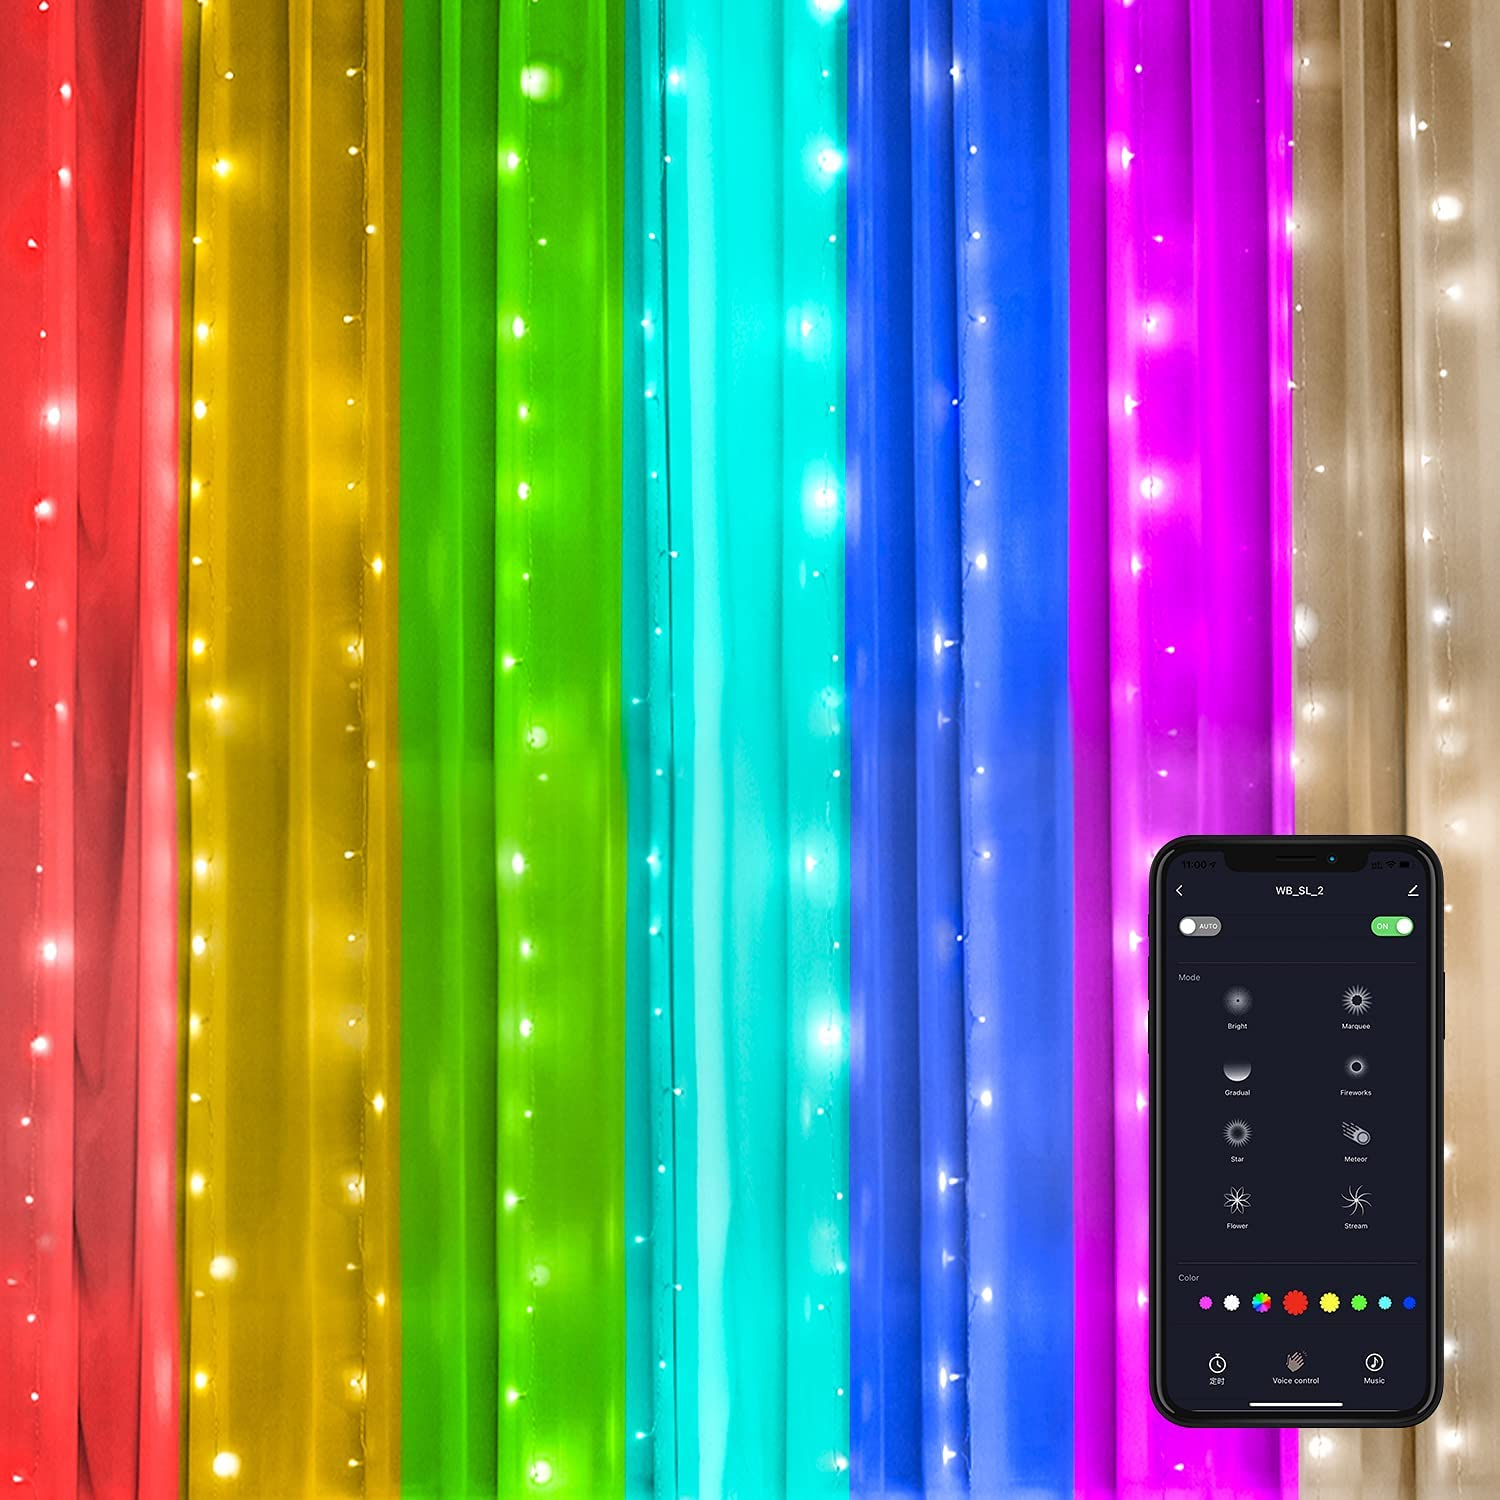 Smart Led Curtain Lights, 9.8ft x 9.8ft WiFi RGB Color Changing Window Curtain String Lights Work with Alexa Siri and Google Assistant for Bedroom, Christmas, Indoor, Outdoor Décor(2.4G WiFi Only)